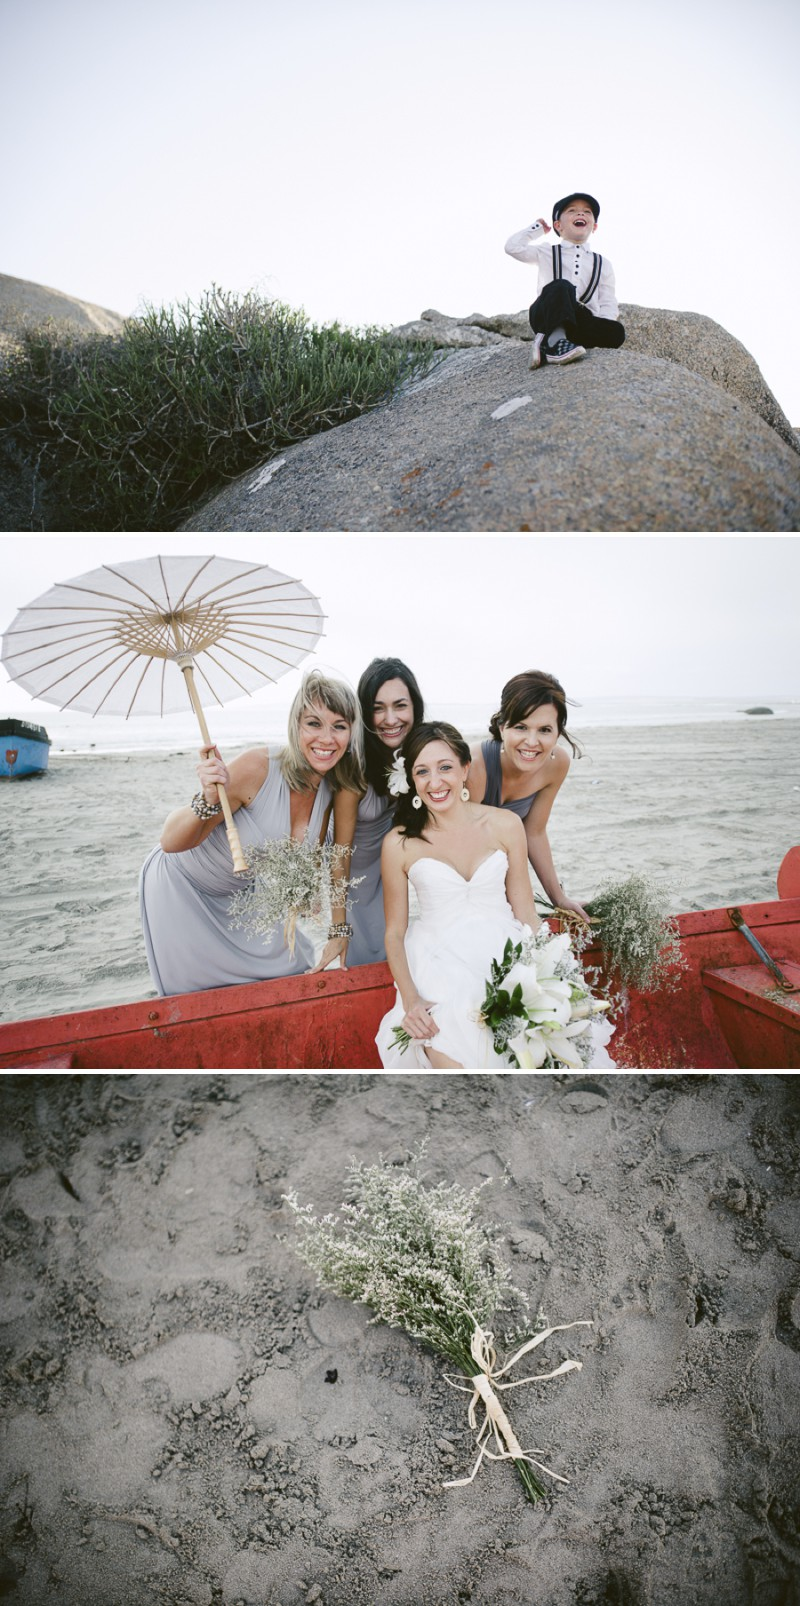 A South African Destination Beach Wedding At Pasternoster Lodge With A Grey Colour Scheme And A Raw Chiffon Bespoke Wedding Dress With A White Lily Bouquet Photographed By Jules Morgan._0010